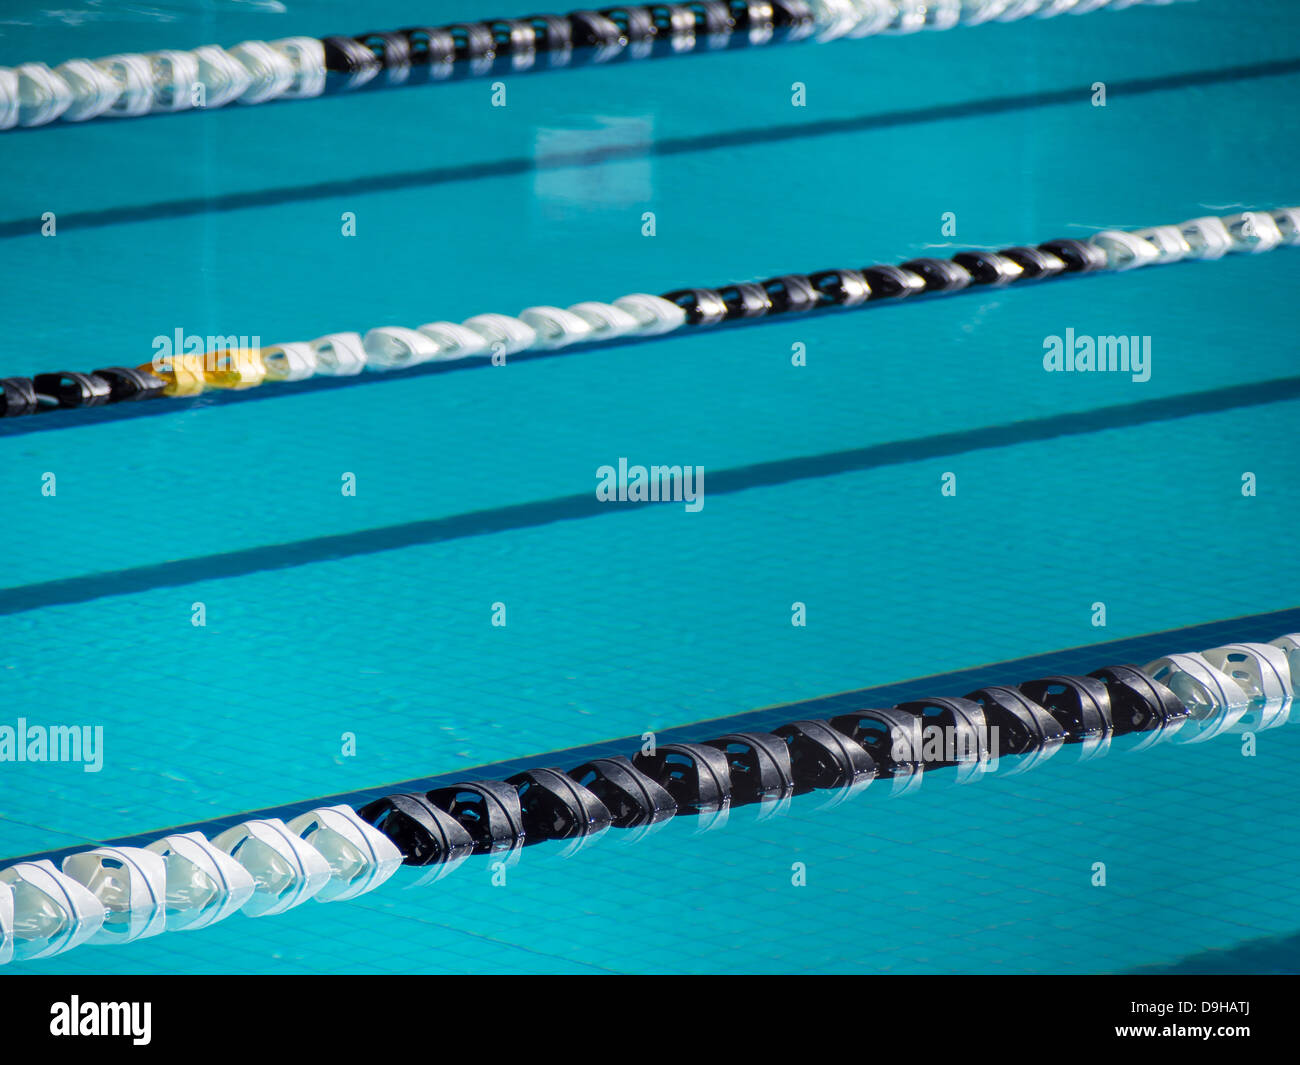 Gfk Pool Duisburg Swimming Pool Flags Stock Photos Swimming Pool Flags Stock